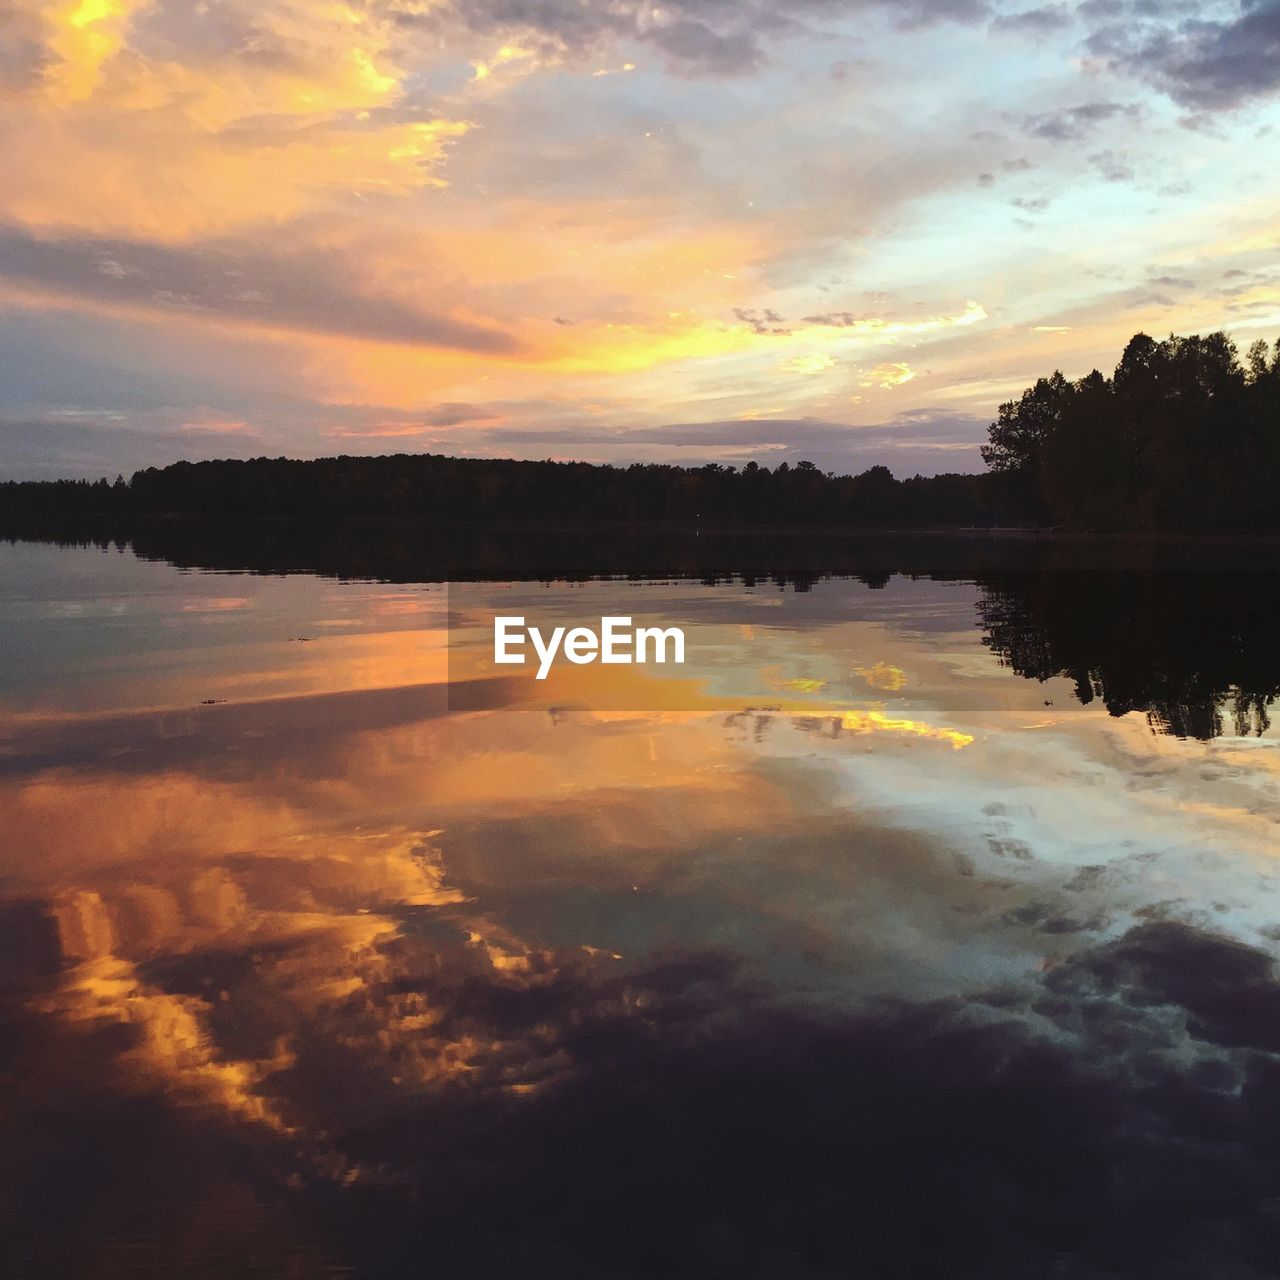 sunset, reflection, sky, water, cloud - sky, tranquil scene, nature, tranquility, scenics, beauty in nature, silhouette, idyllic, outdoors, no people, lake, tree, day